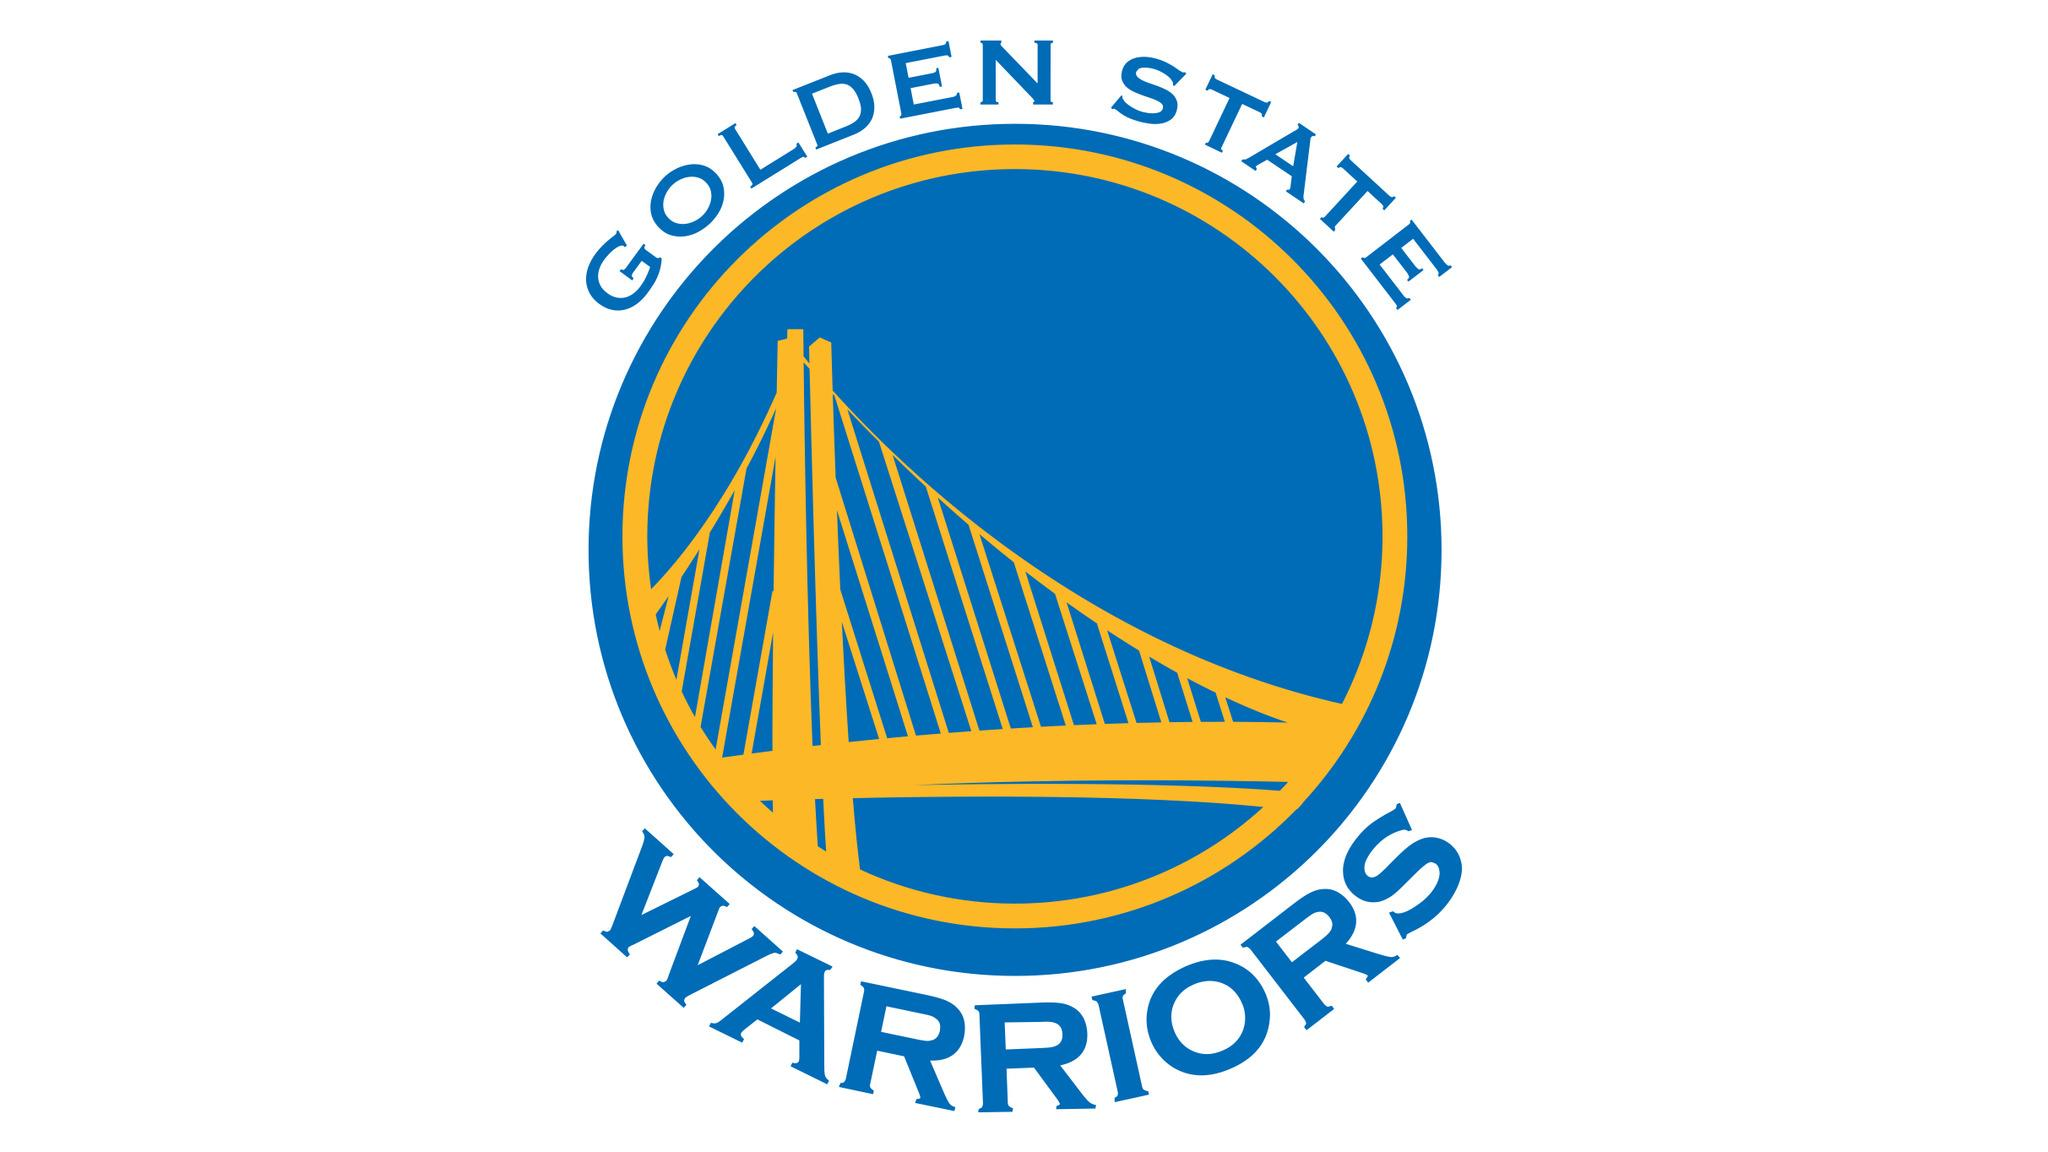 Golden State Warriors vs. Denver Nuggets